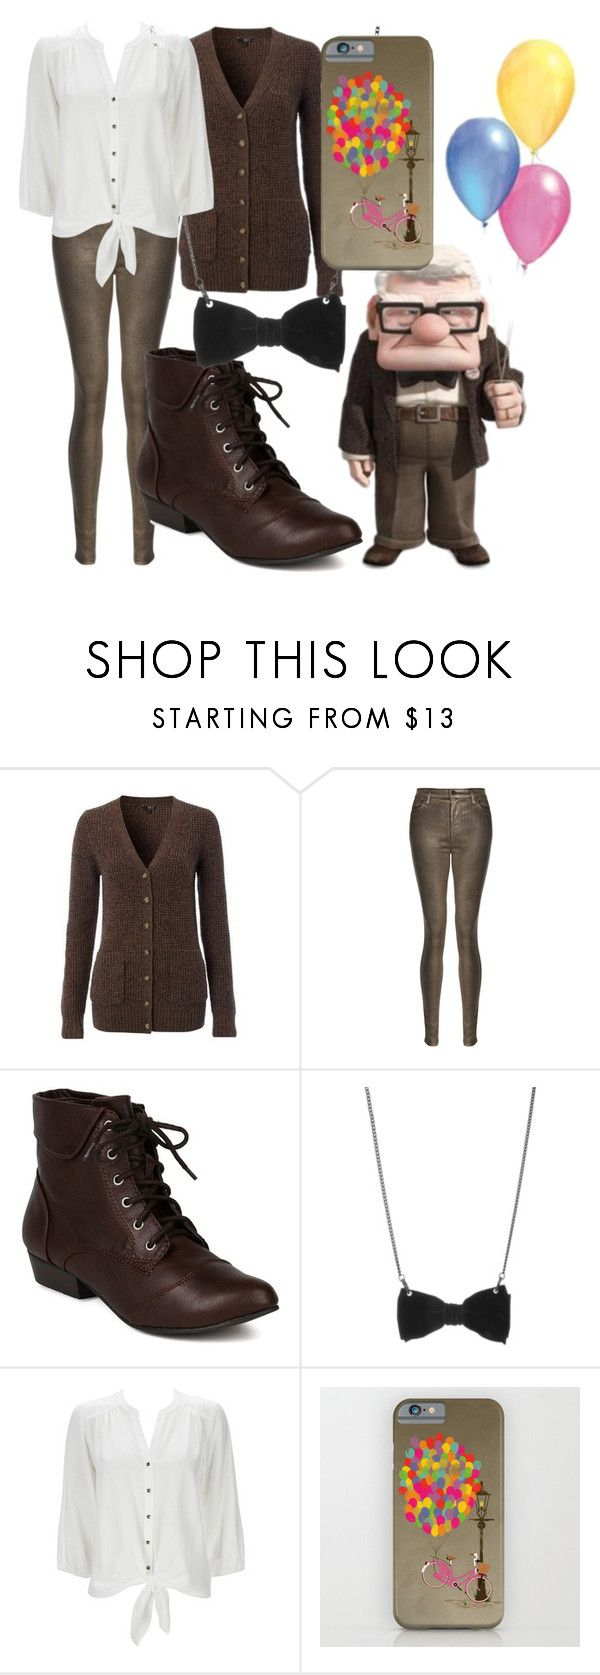 """""""Carl Fredricksen"""" by dutchveertje ❤ liked on Polyvore featuring NW3, J Brand, Breckelle's, Tatty Devine and Wallis"""